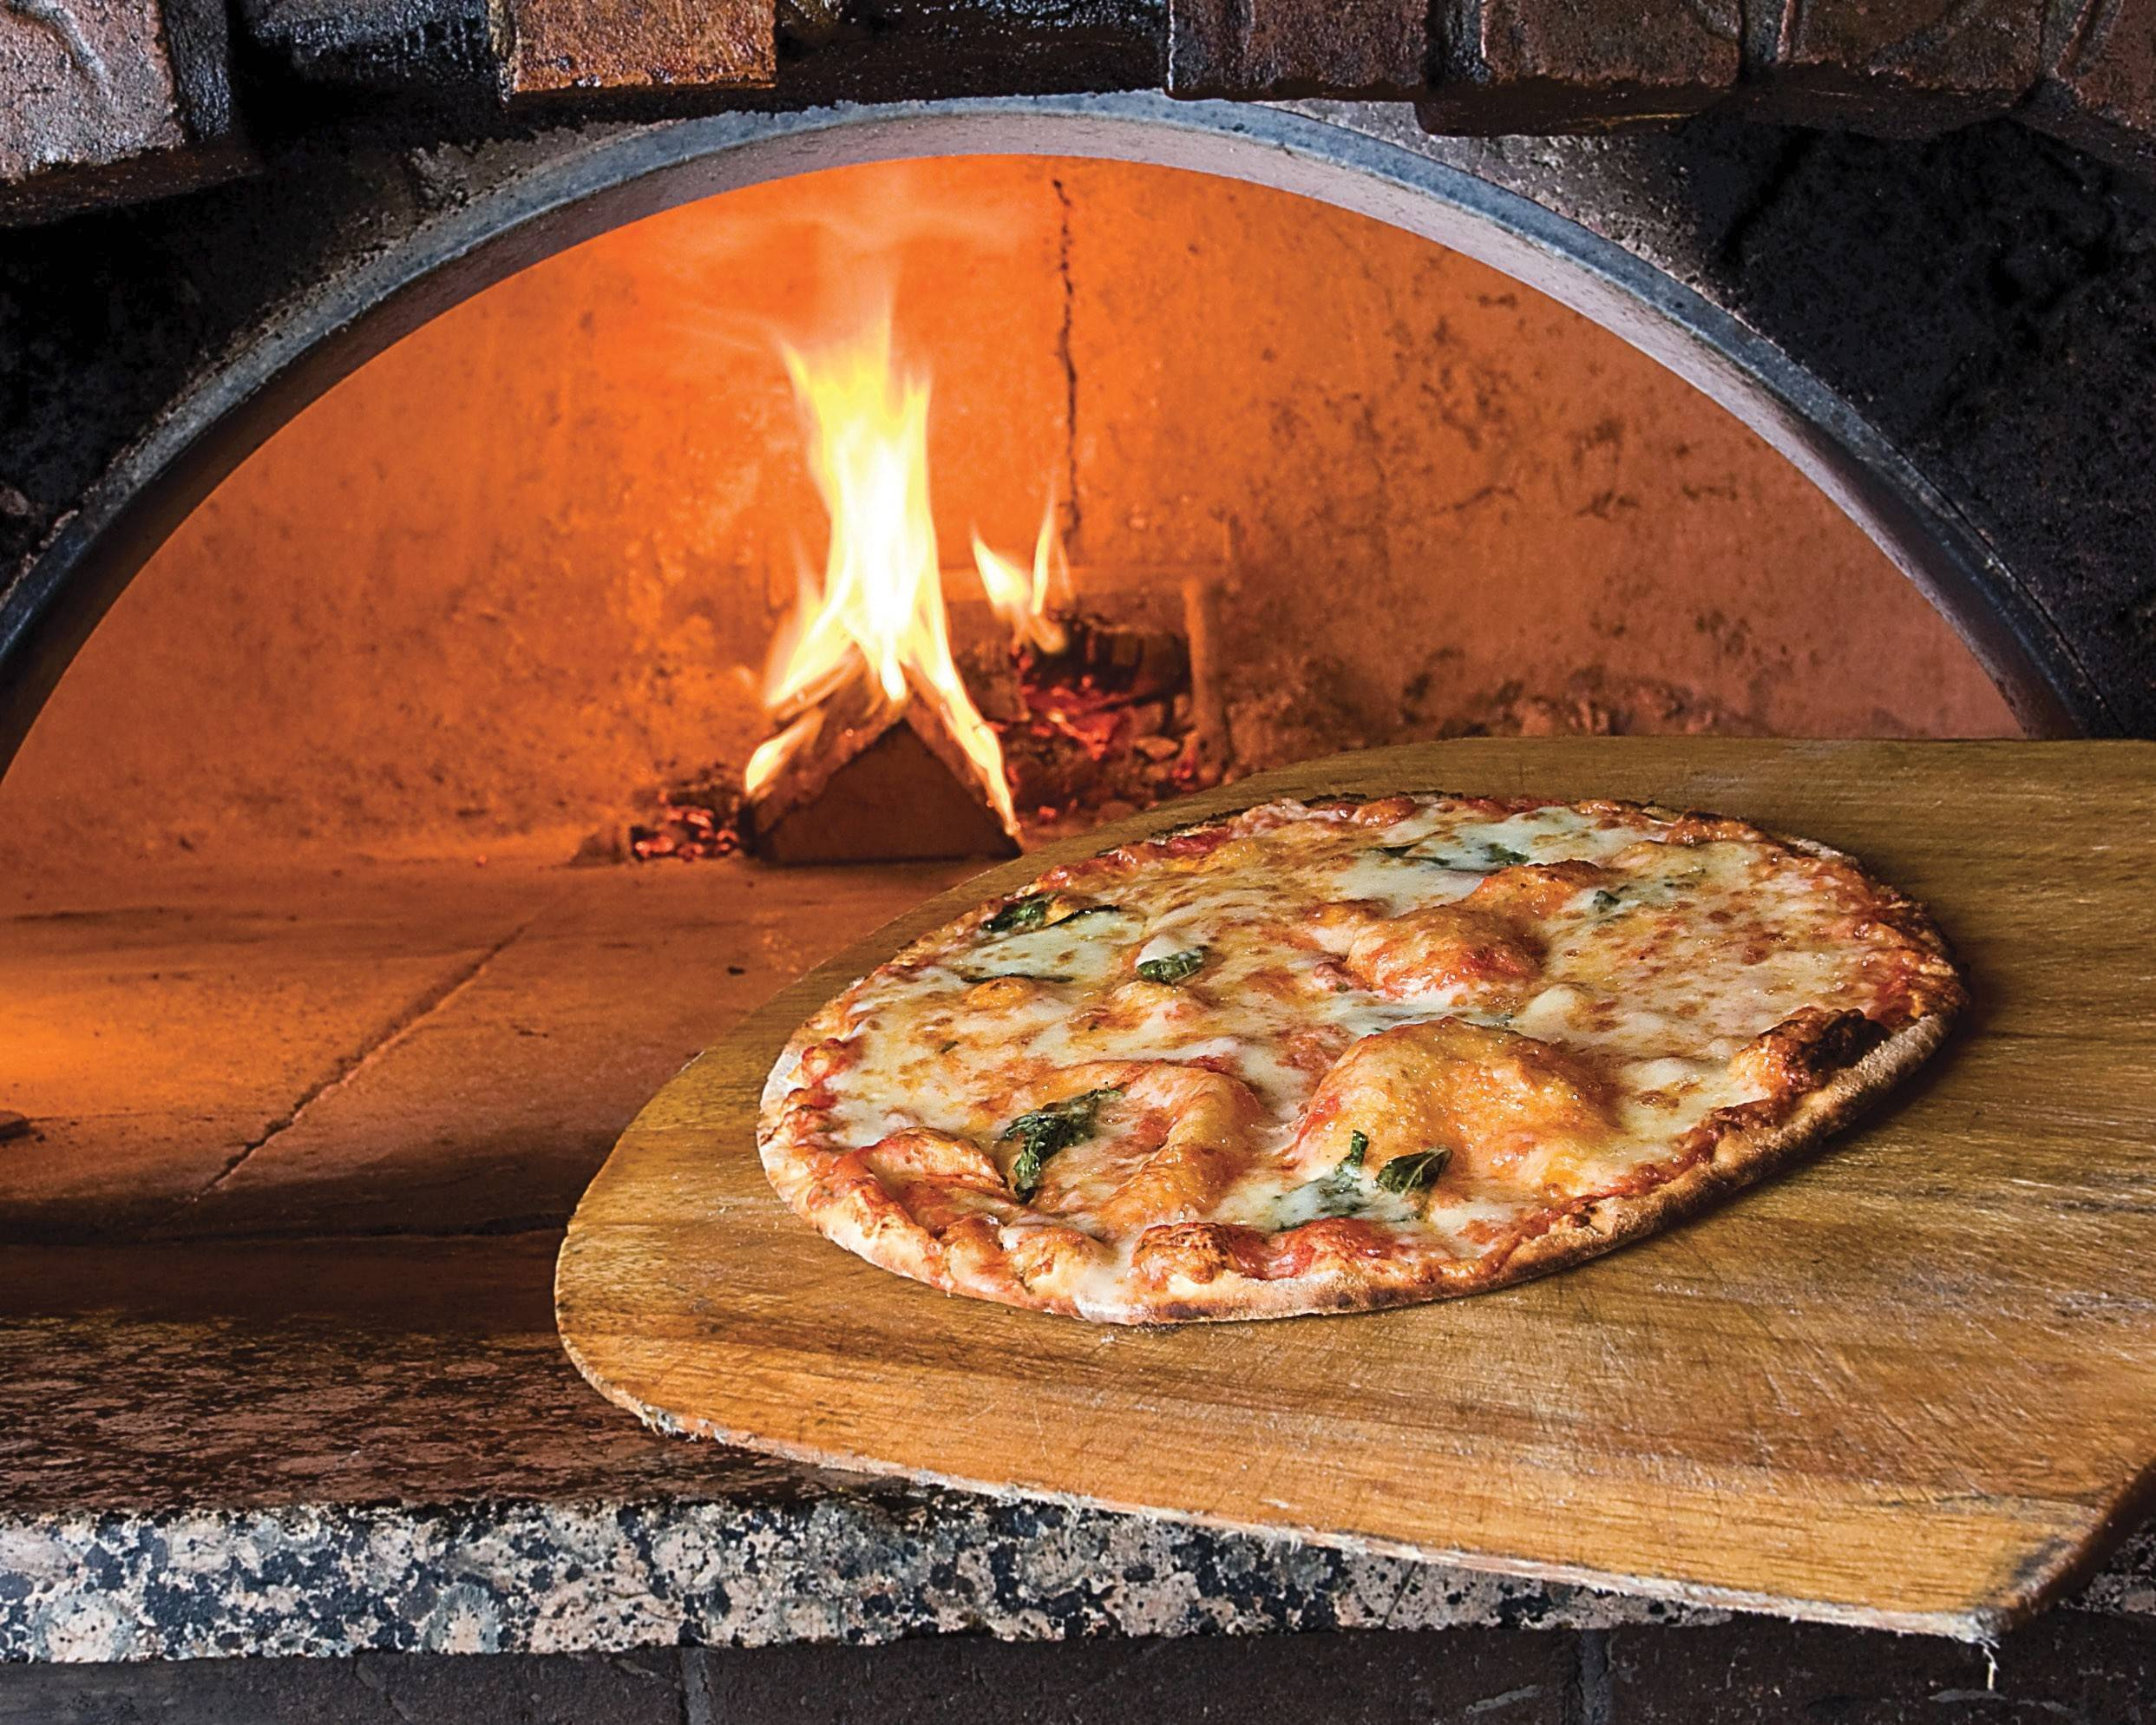 Tuscany celebrates Pi Day with $3.14 pizzas, like this Margherita version, available for lunch.